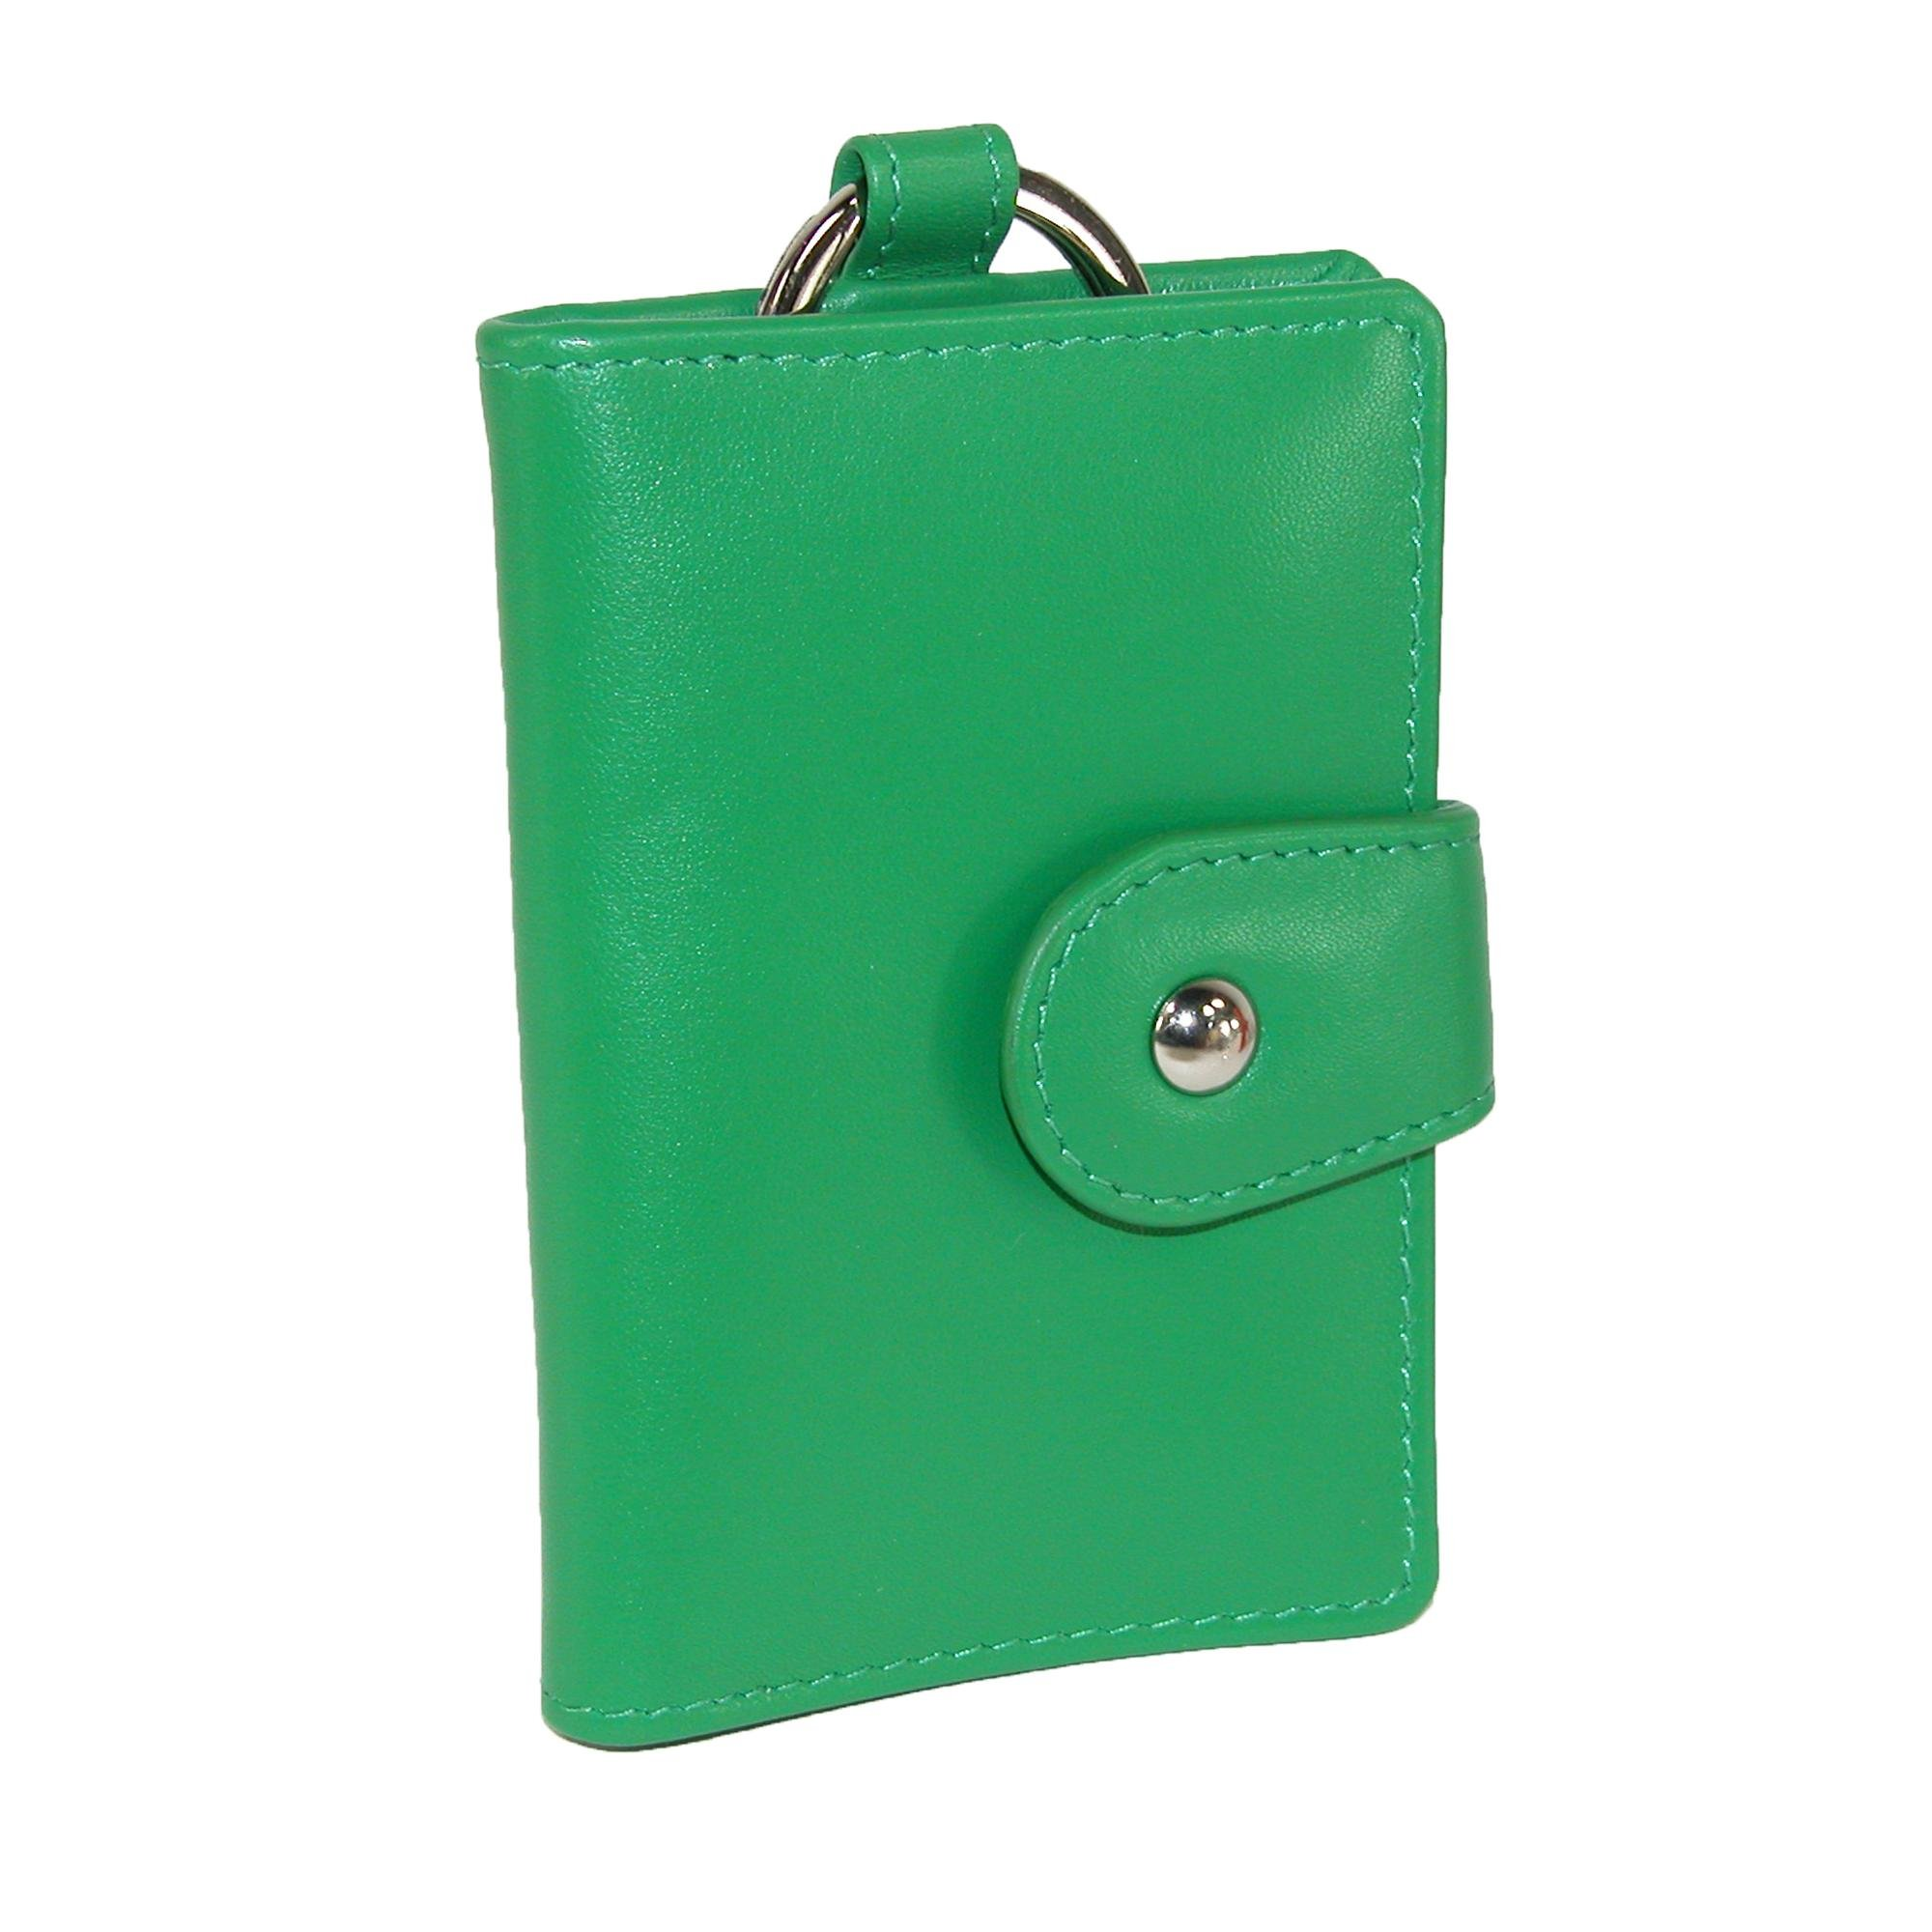 CTM Women's Leather Card and ID Holder Key Chain Fob, Emerald Green